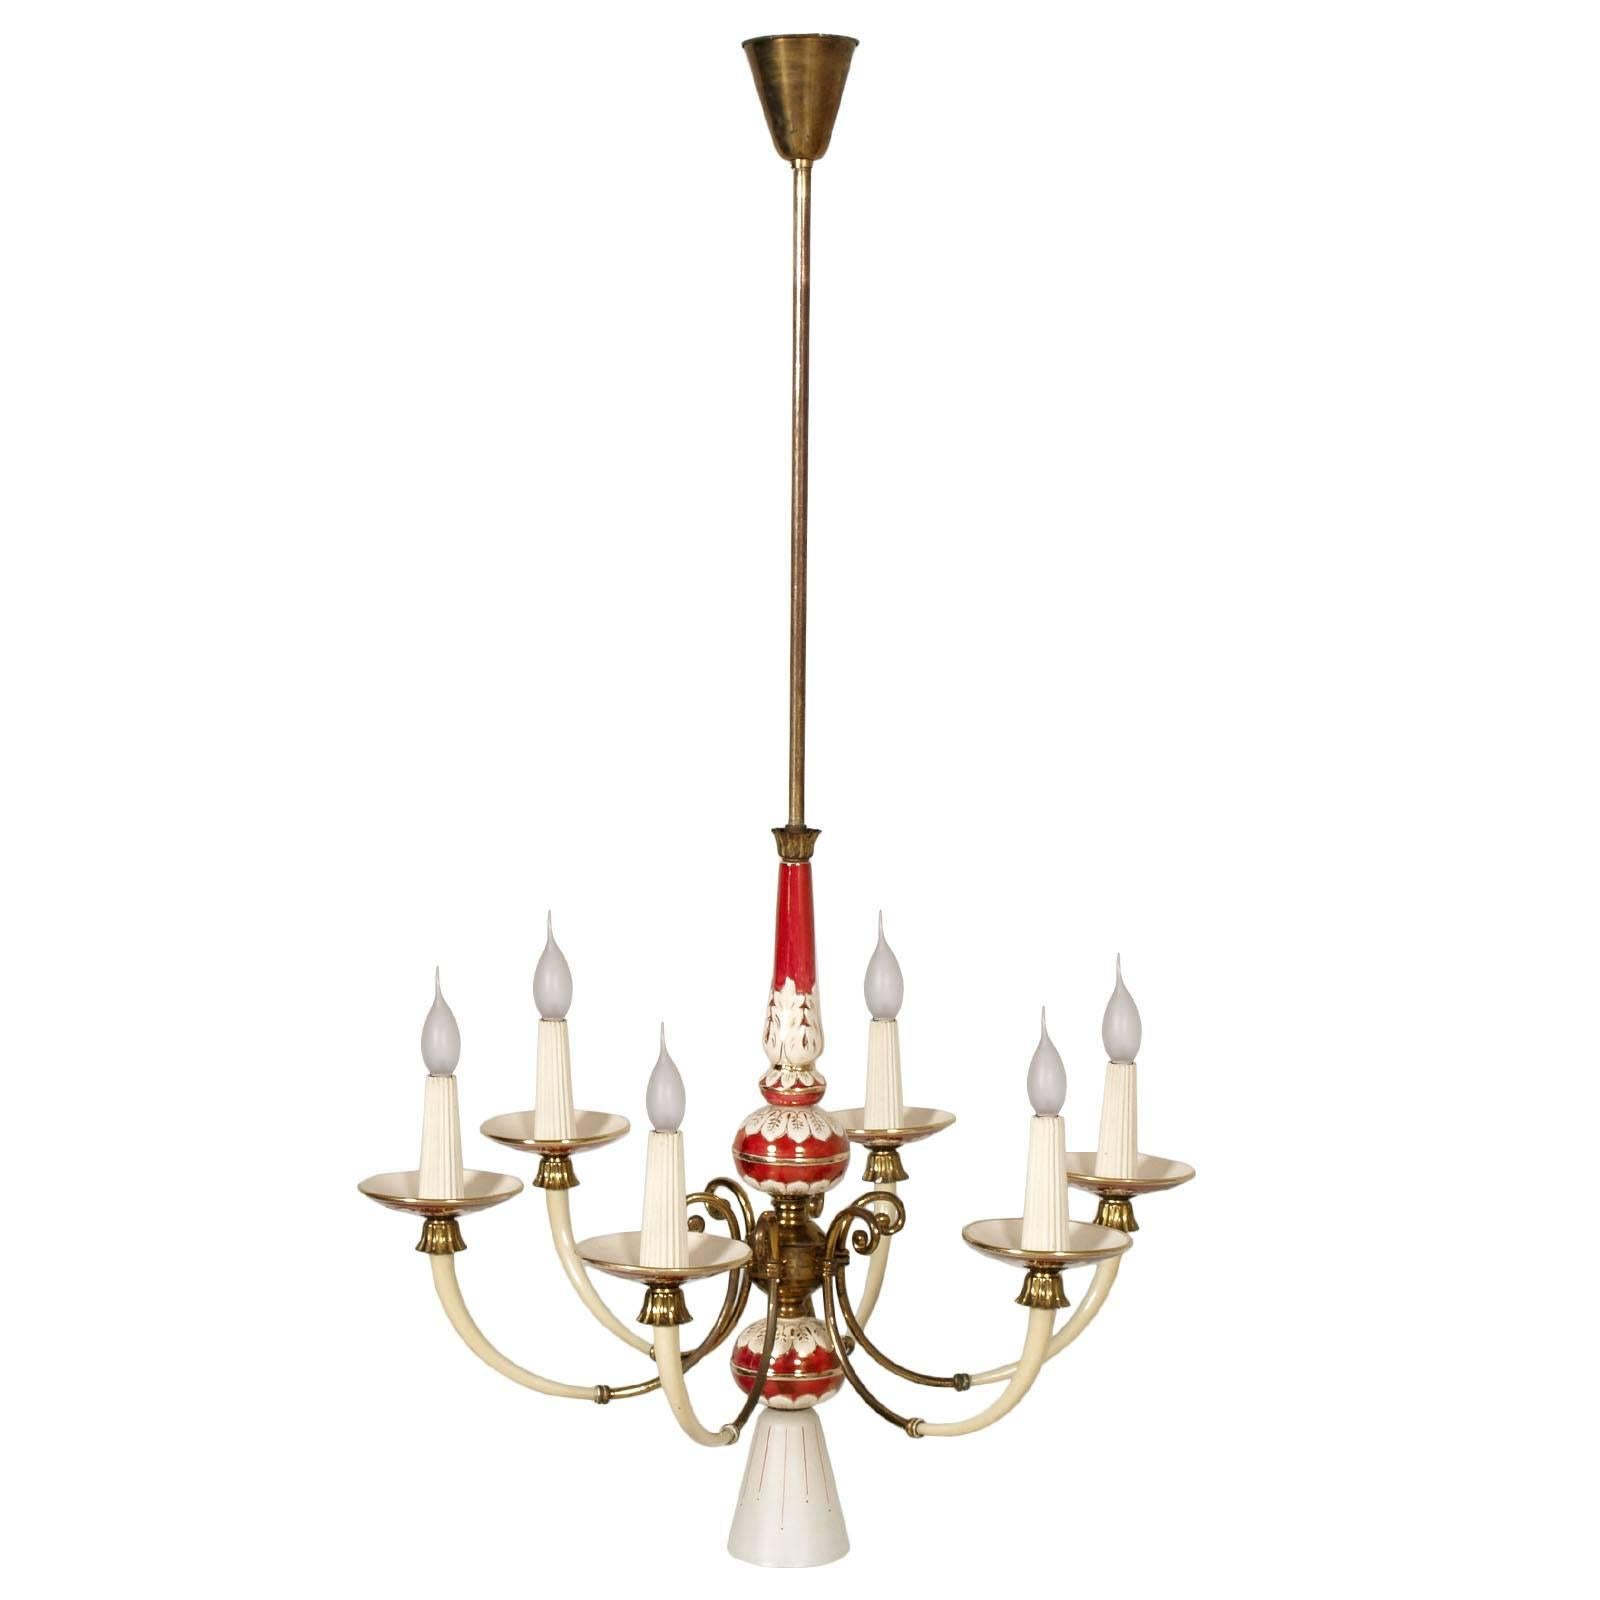 Art deco six light florence chandelier gold decorated porcelain art deco six light florence chandelier gold decorated porcelain enameled brass for sale at 1stdibs arubaitofo Gallery